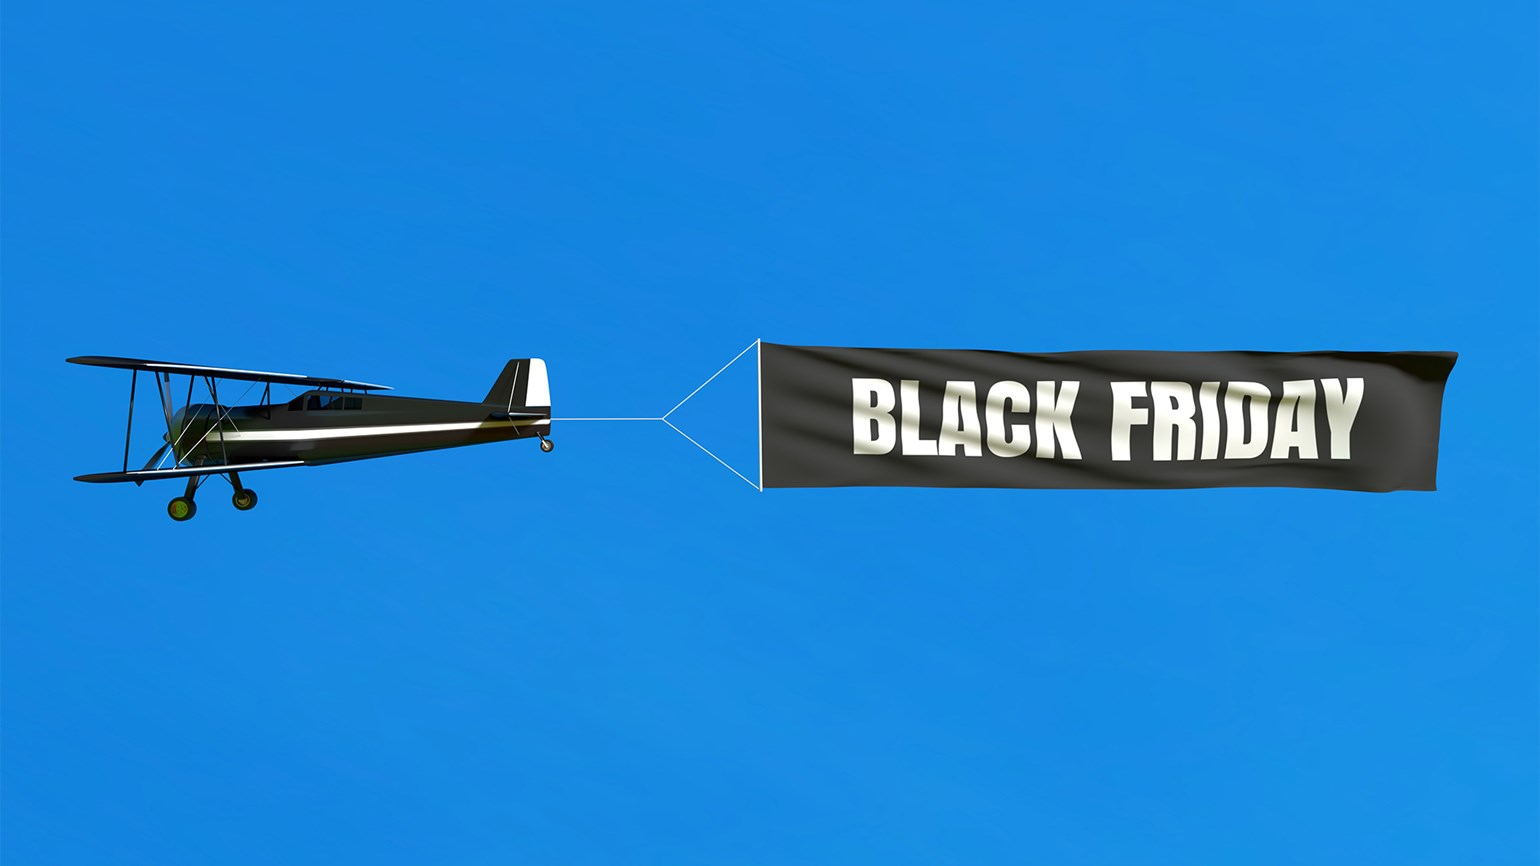 Black Friday promotions grow in importance for travel companies